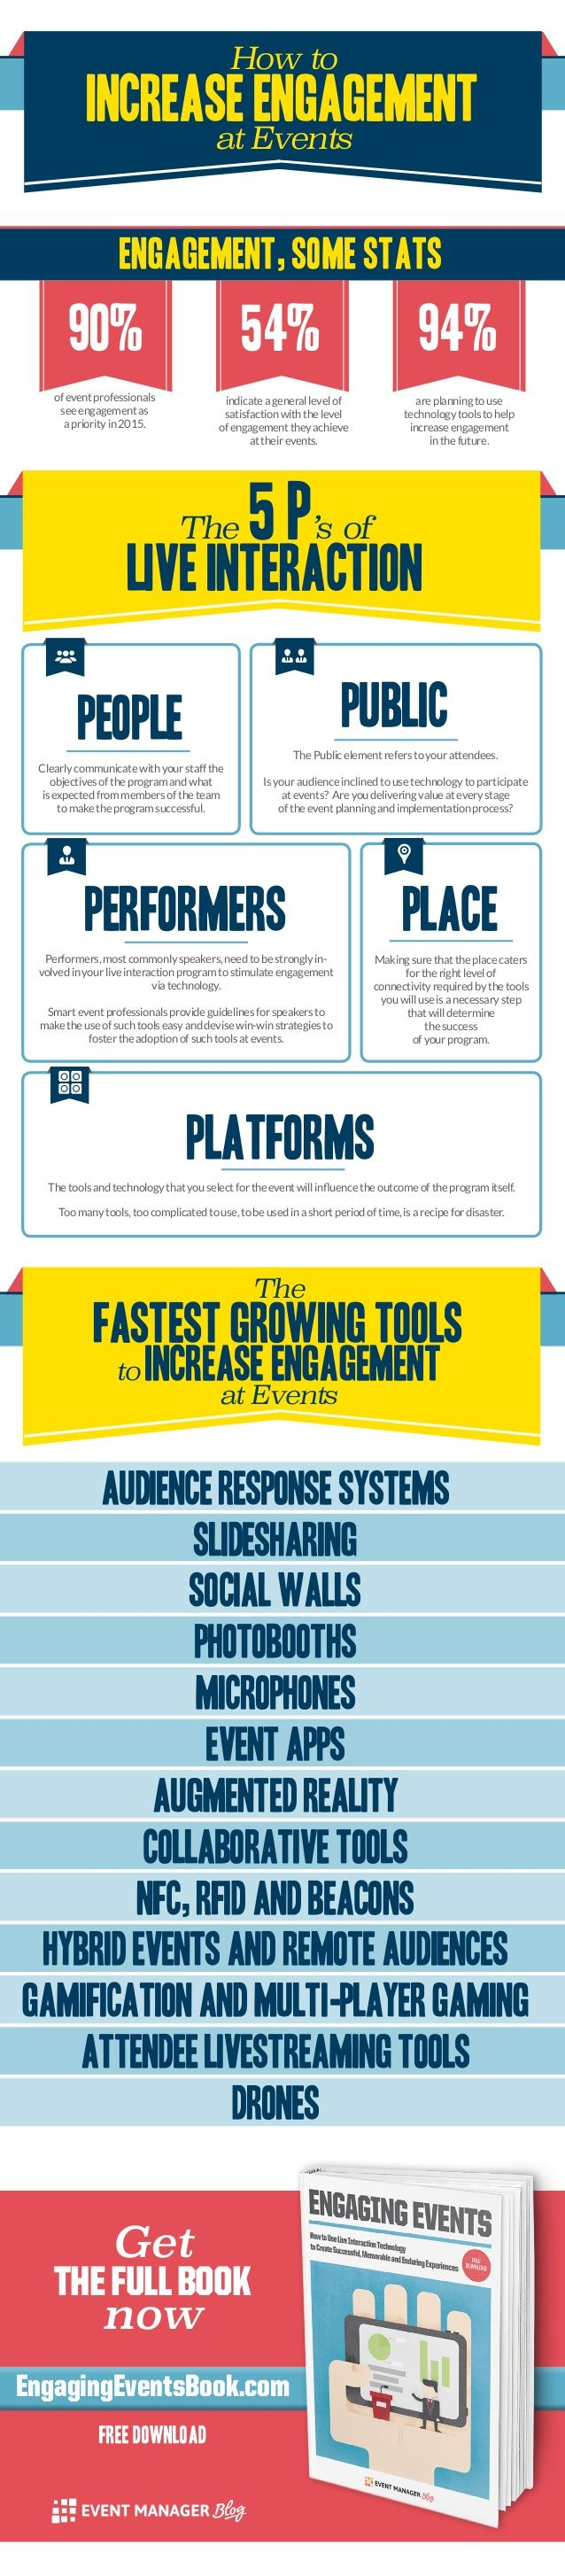 How to Increase Engagement at Events [Infographic]